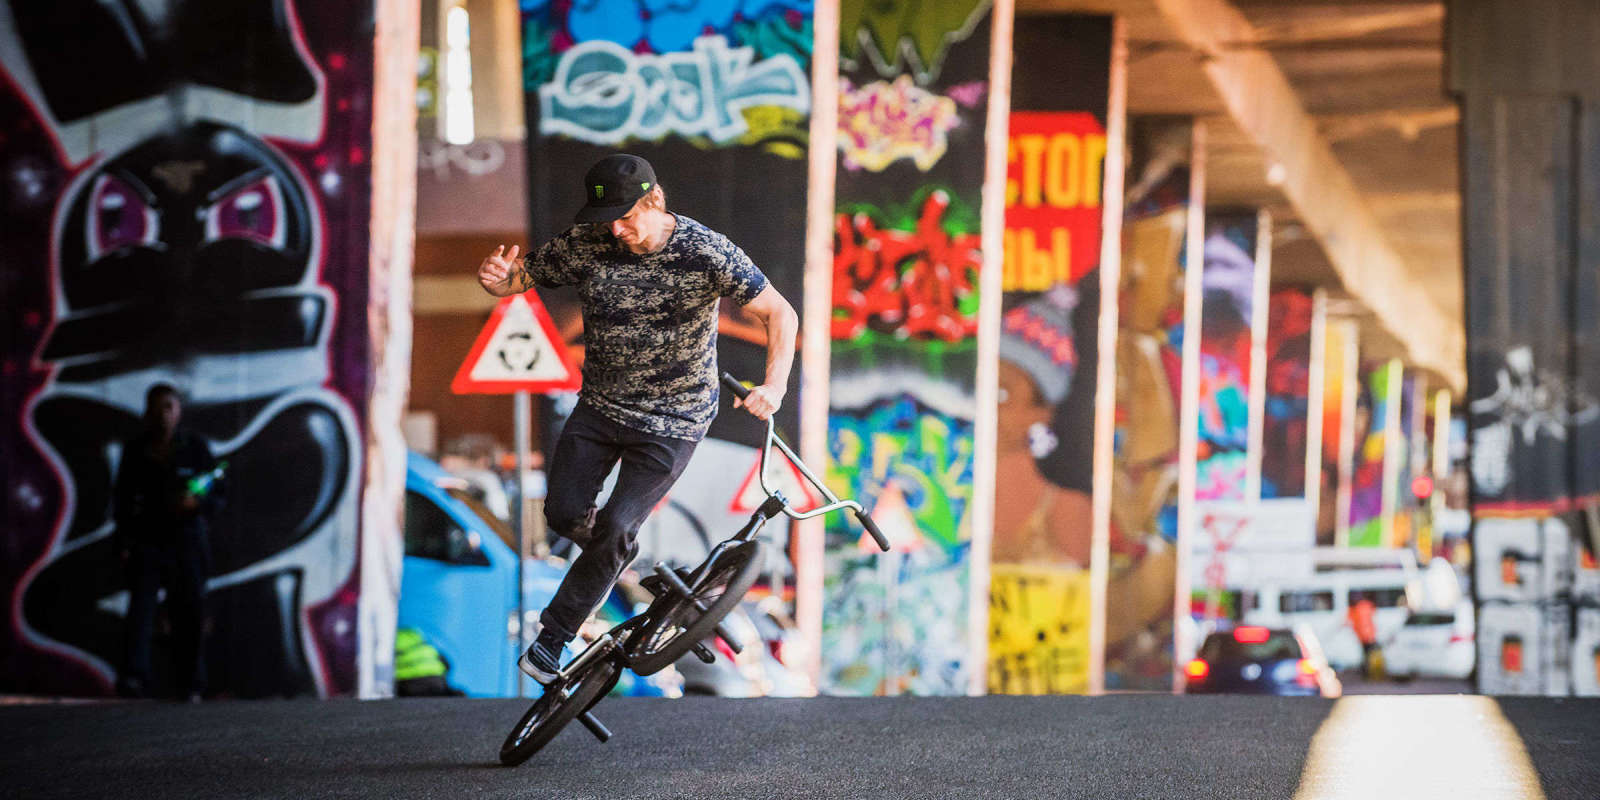 Adam Kun BMX shoot in Johannesburg South Africa